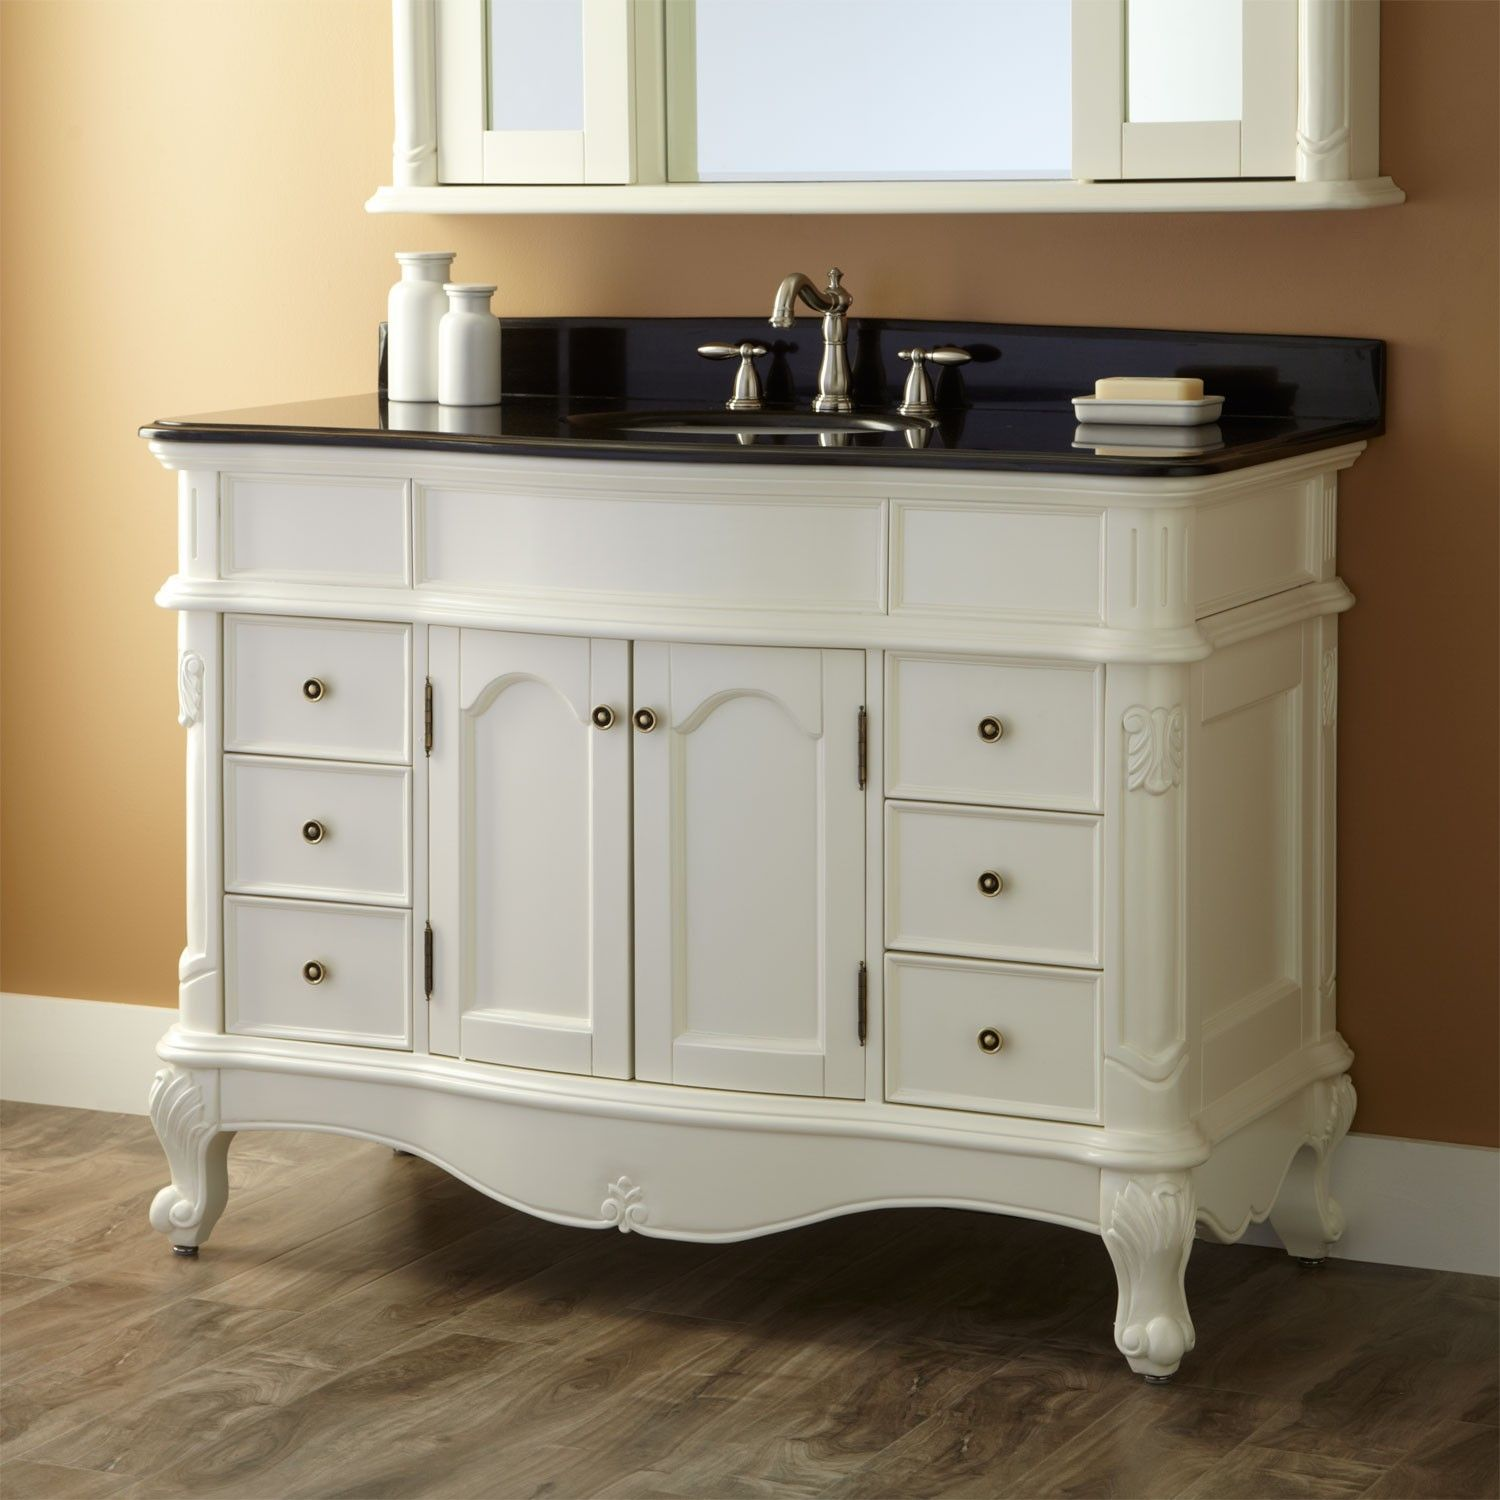 48 quot sedwick white vanity kitchen and bath ideas 16945